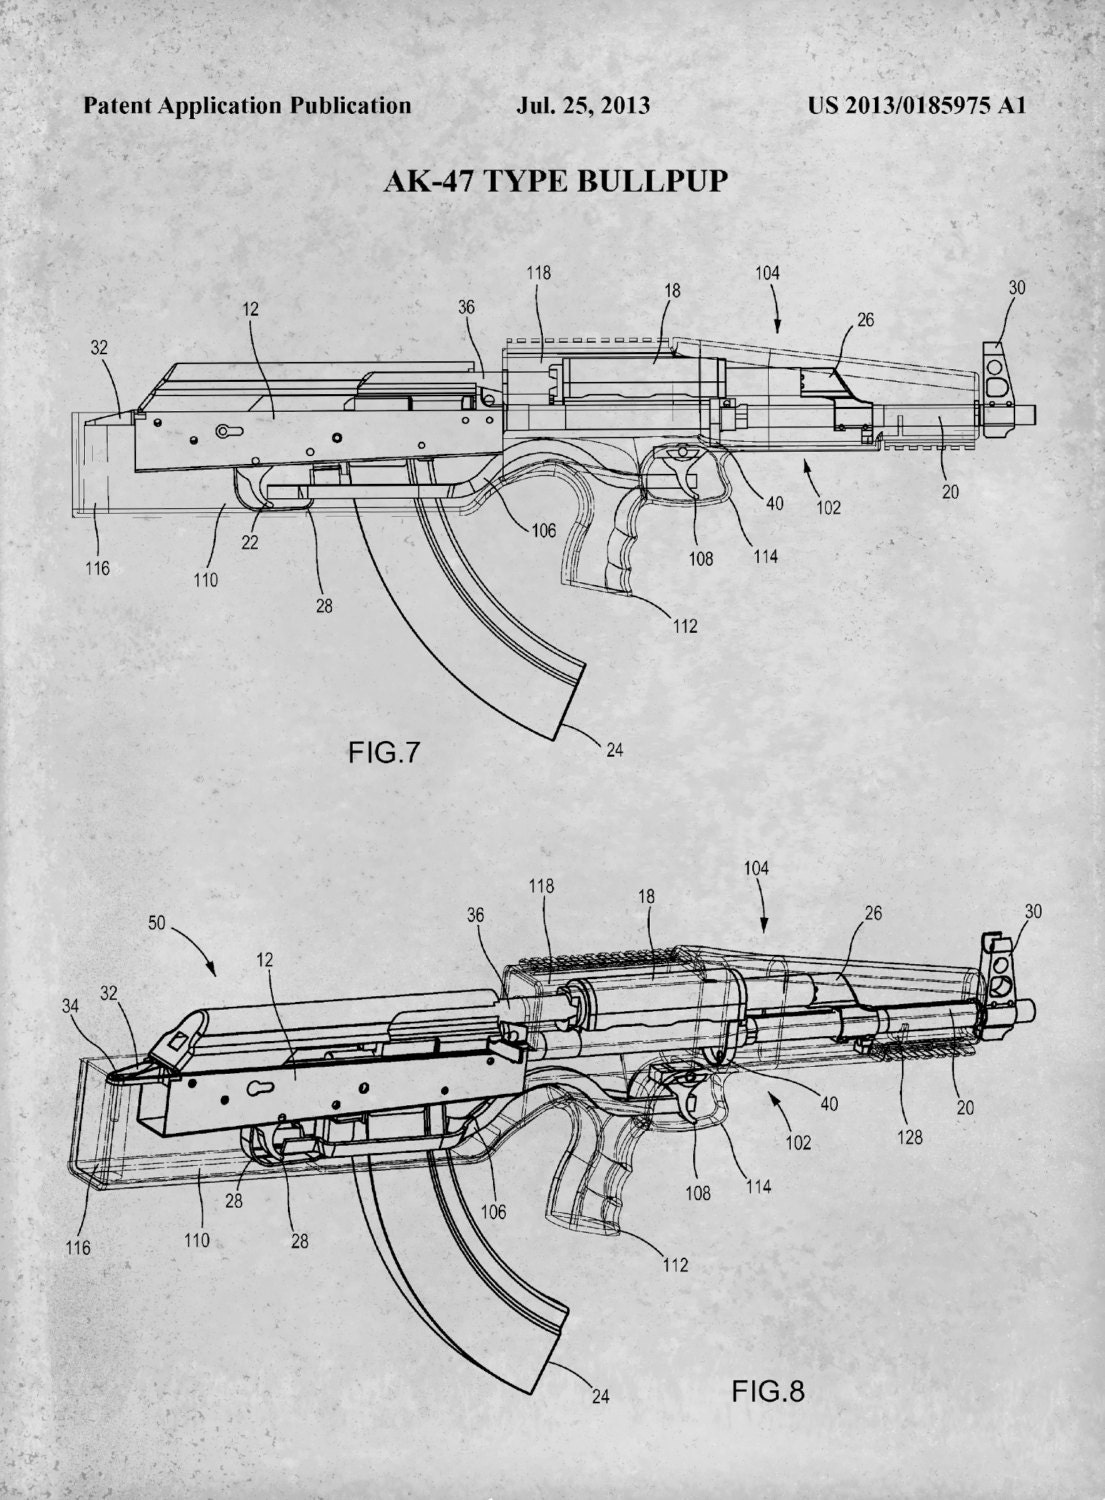 AK-47 Patent Print - Bull-Pup ault Rifle Patent Print ... on